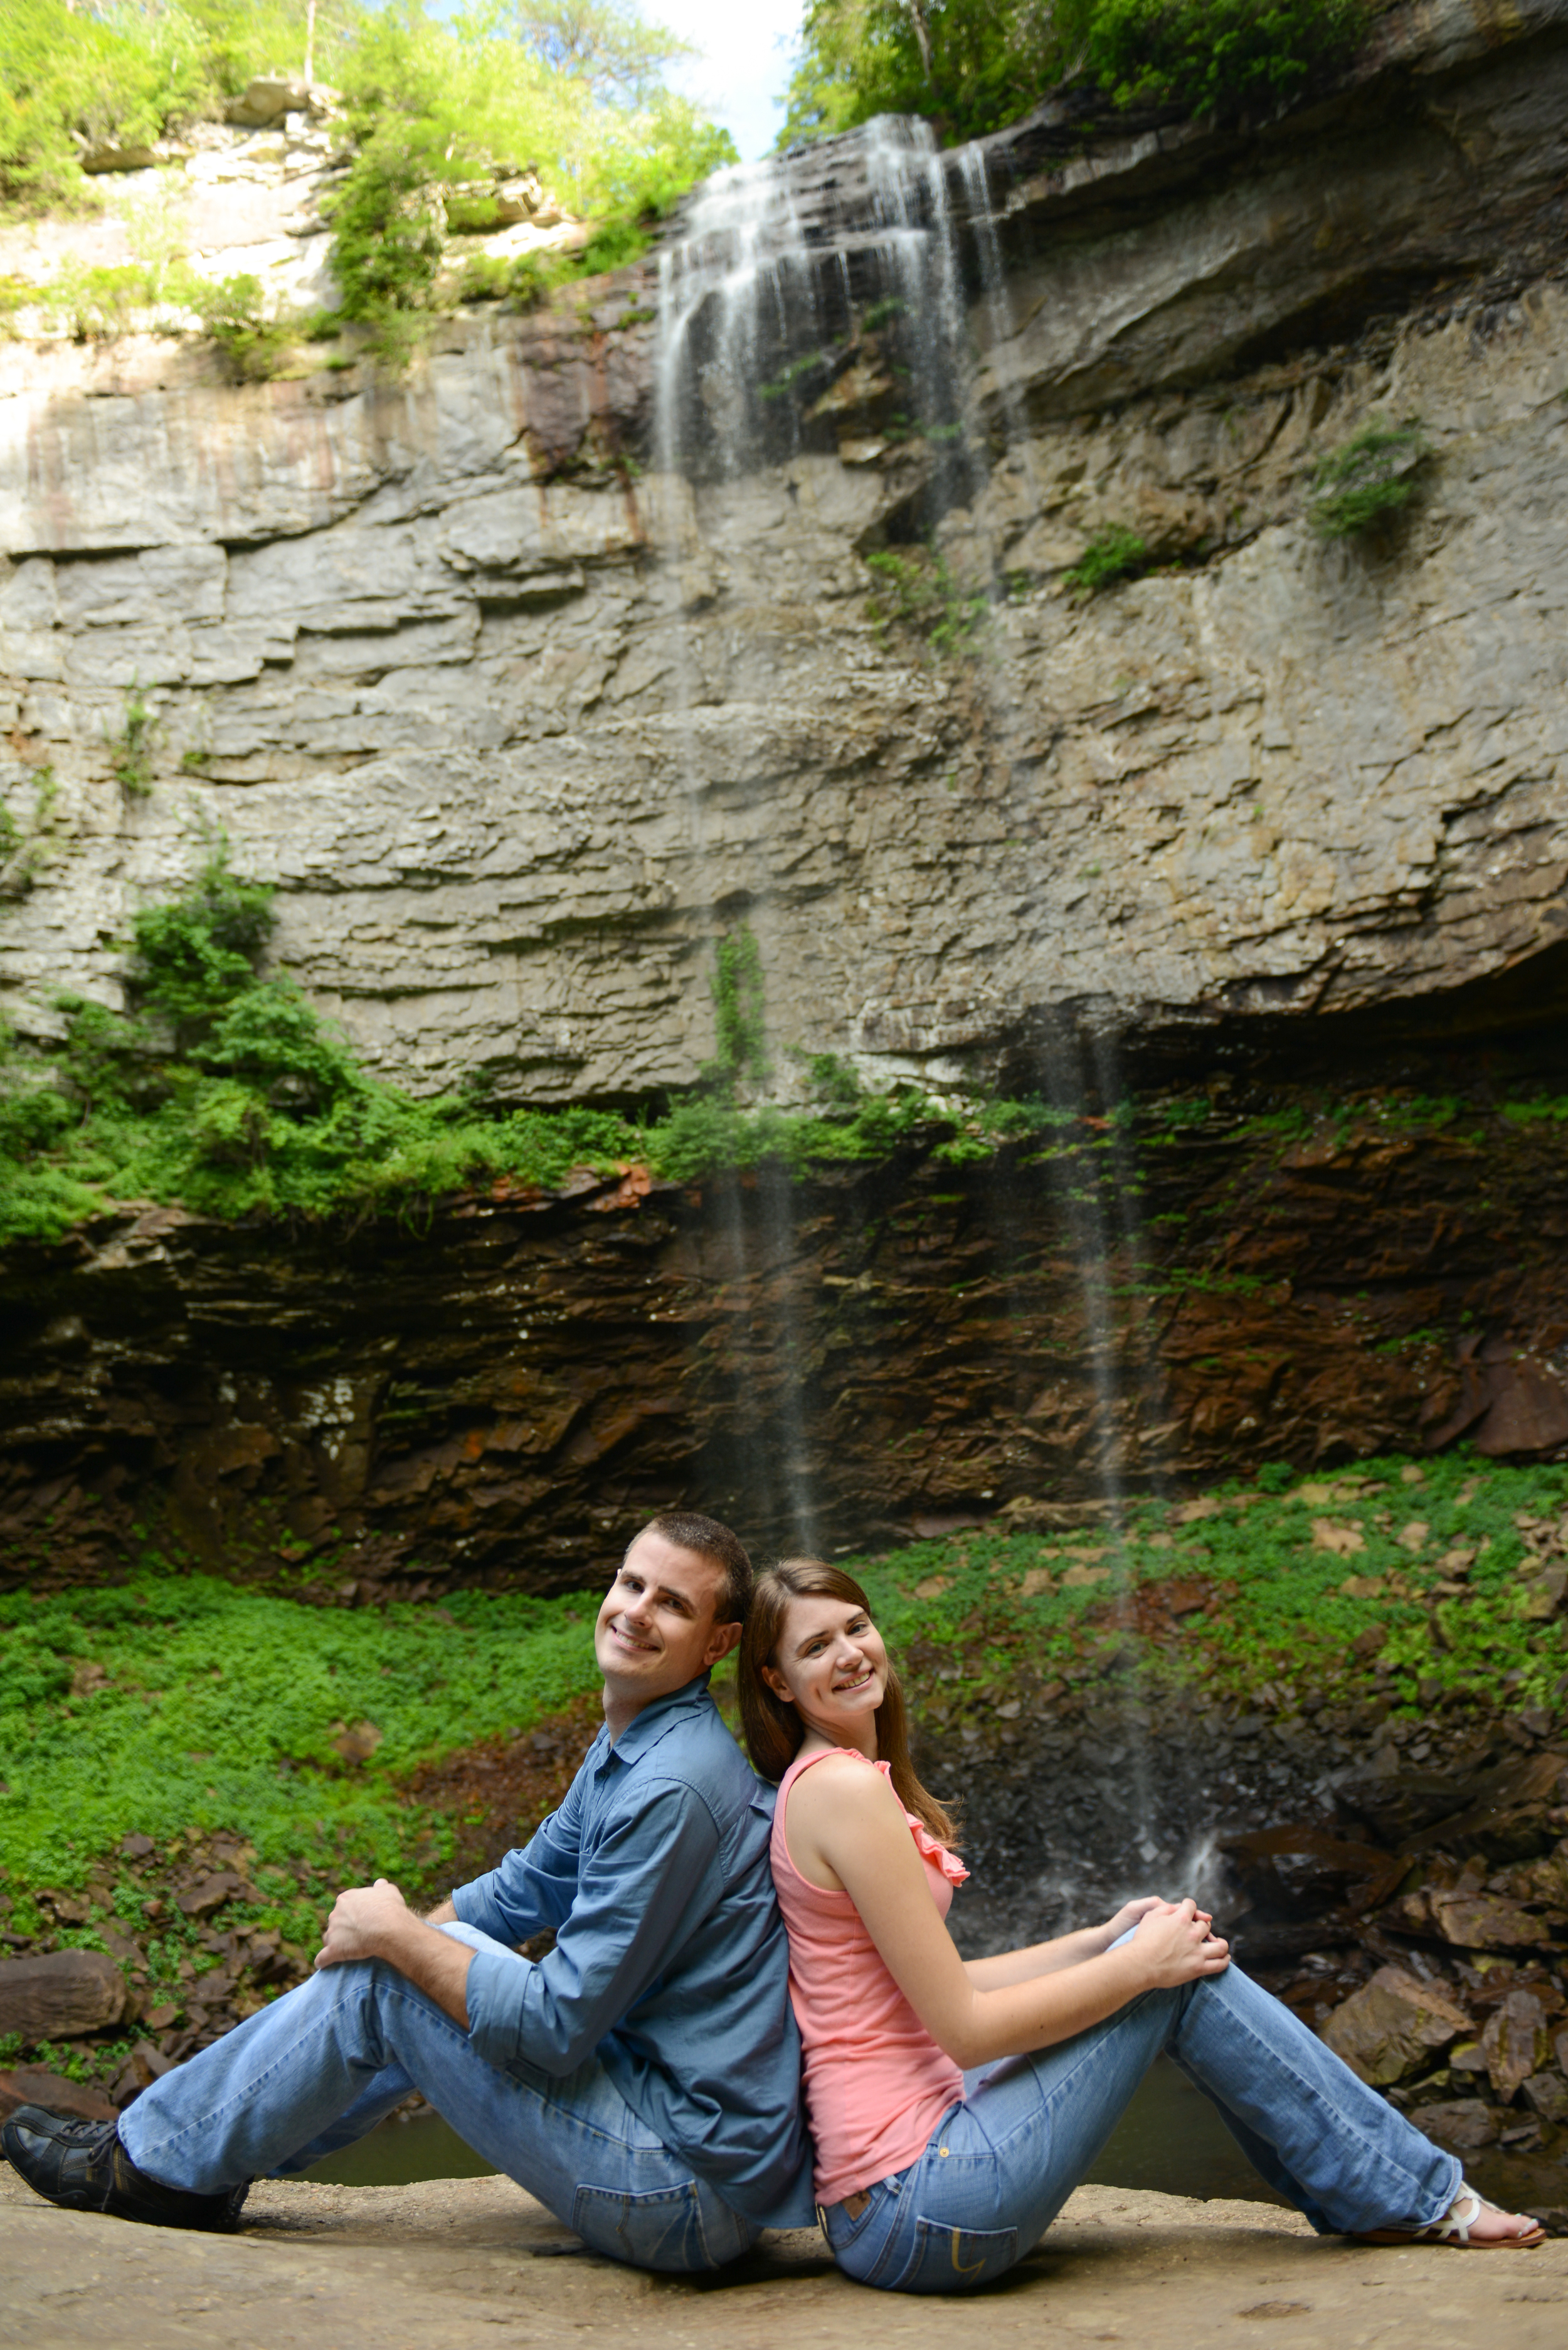 For James & Alyssa's engagement session we hiked to one of their favorite waterfalls, Fall Creek Falls.